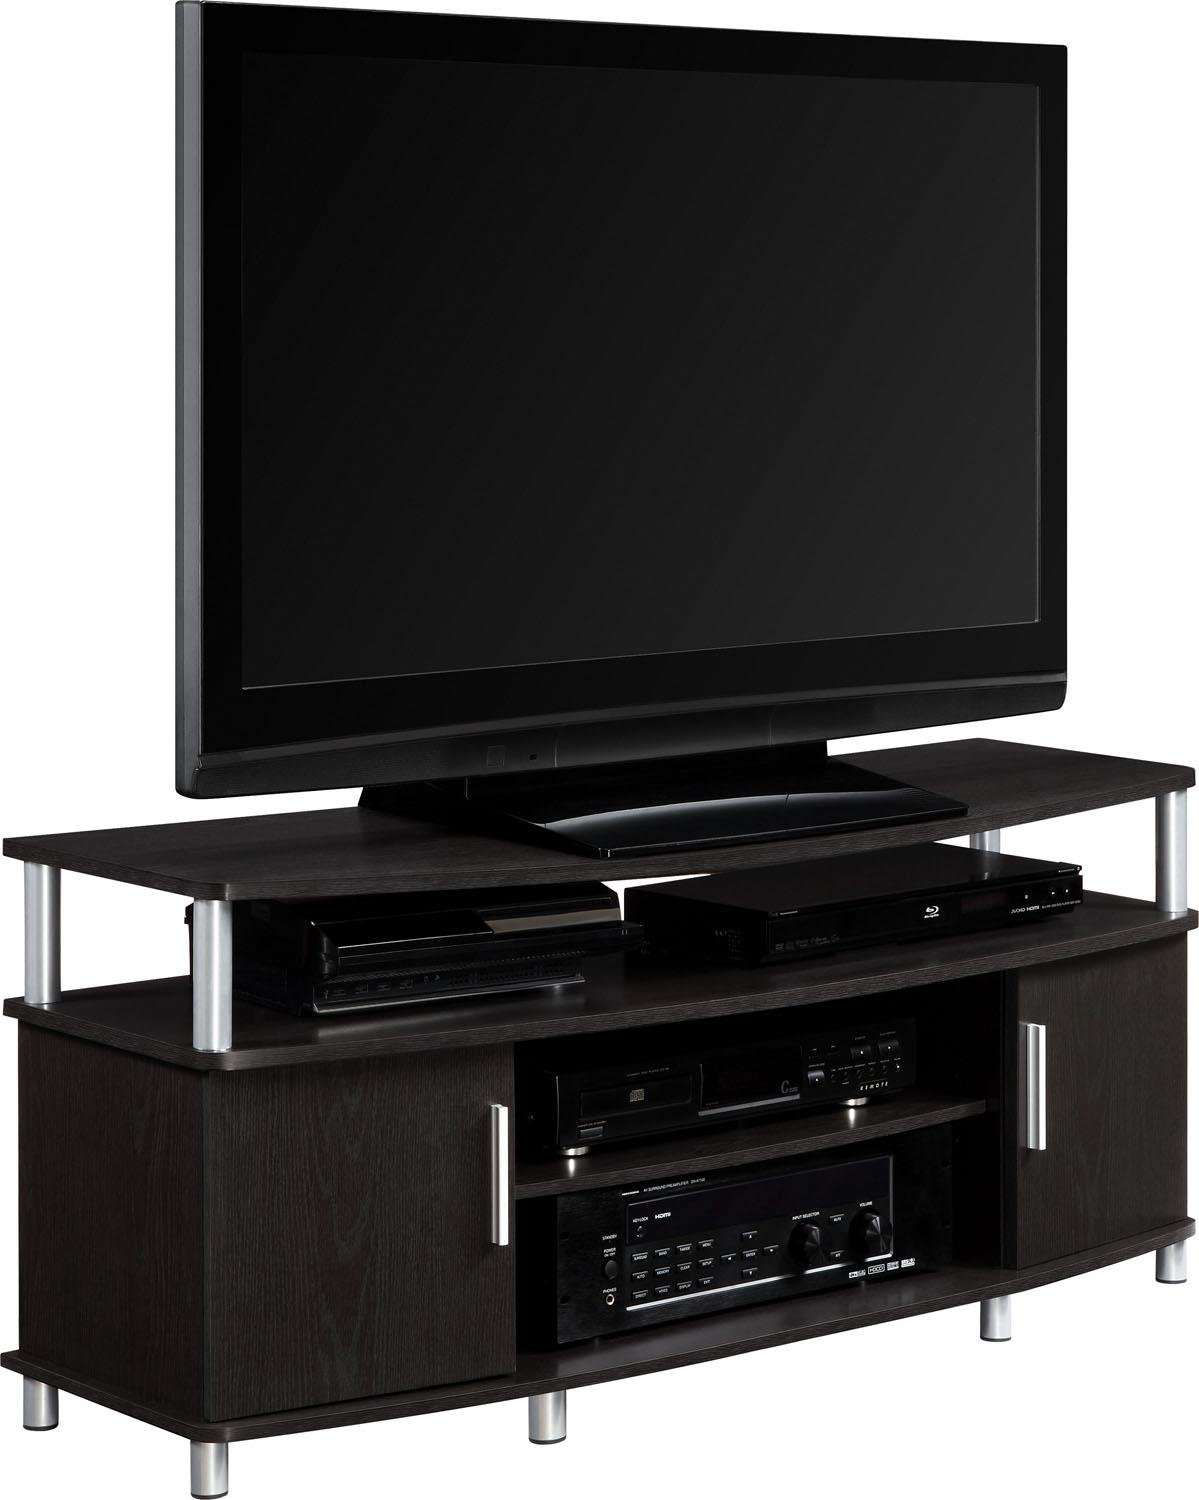 Ameriwood Home Carson Tv Stand For Tvs Up To 50 Inches Wide Cherry